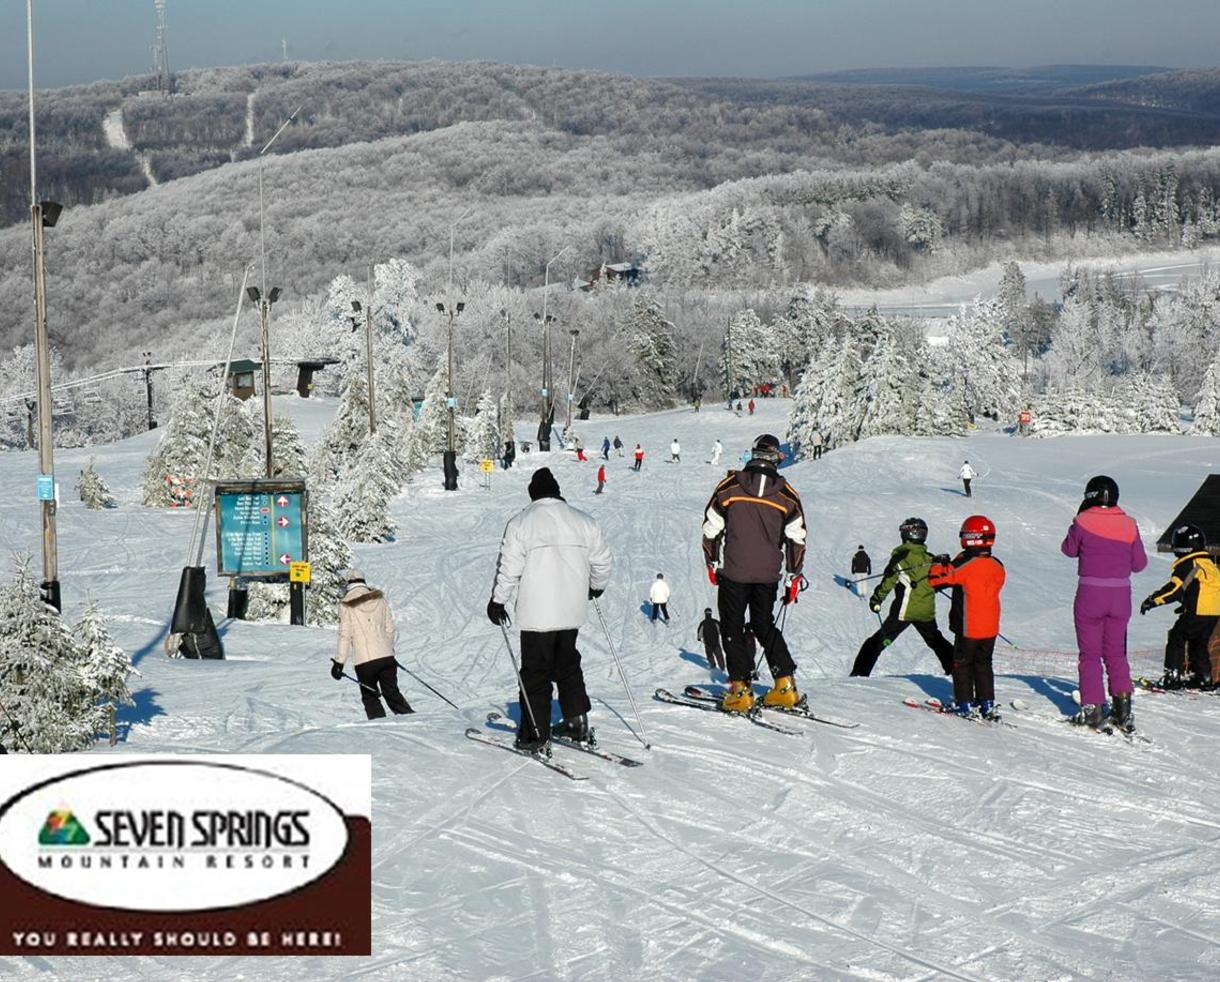 deal: $68 for 2 seven springs ski or snowboard lift tickets ($140